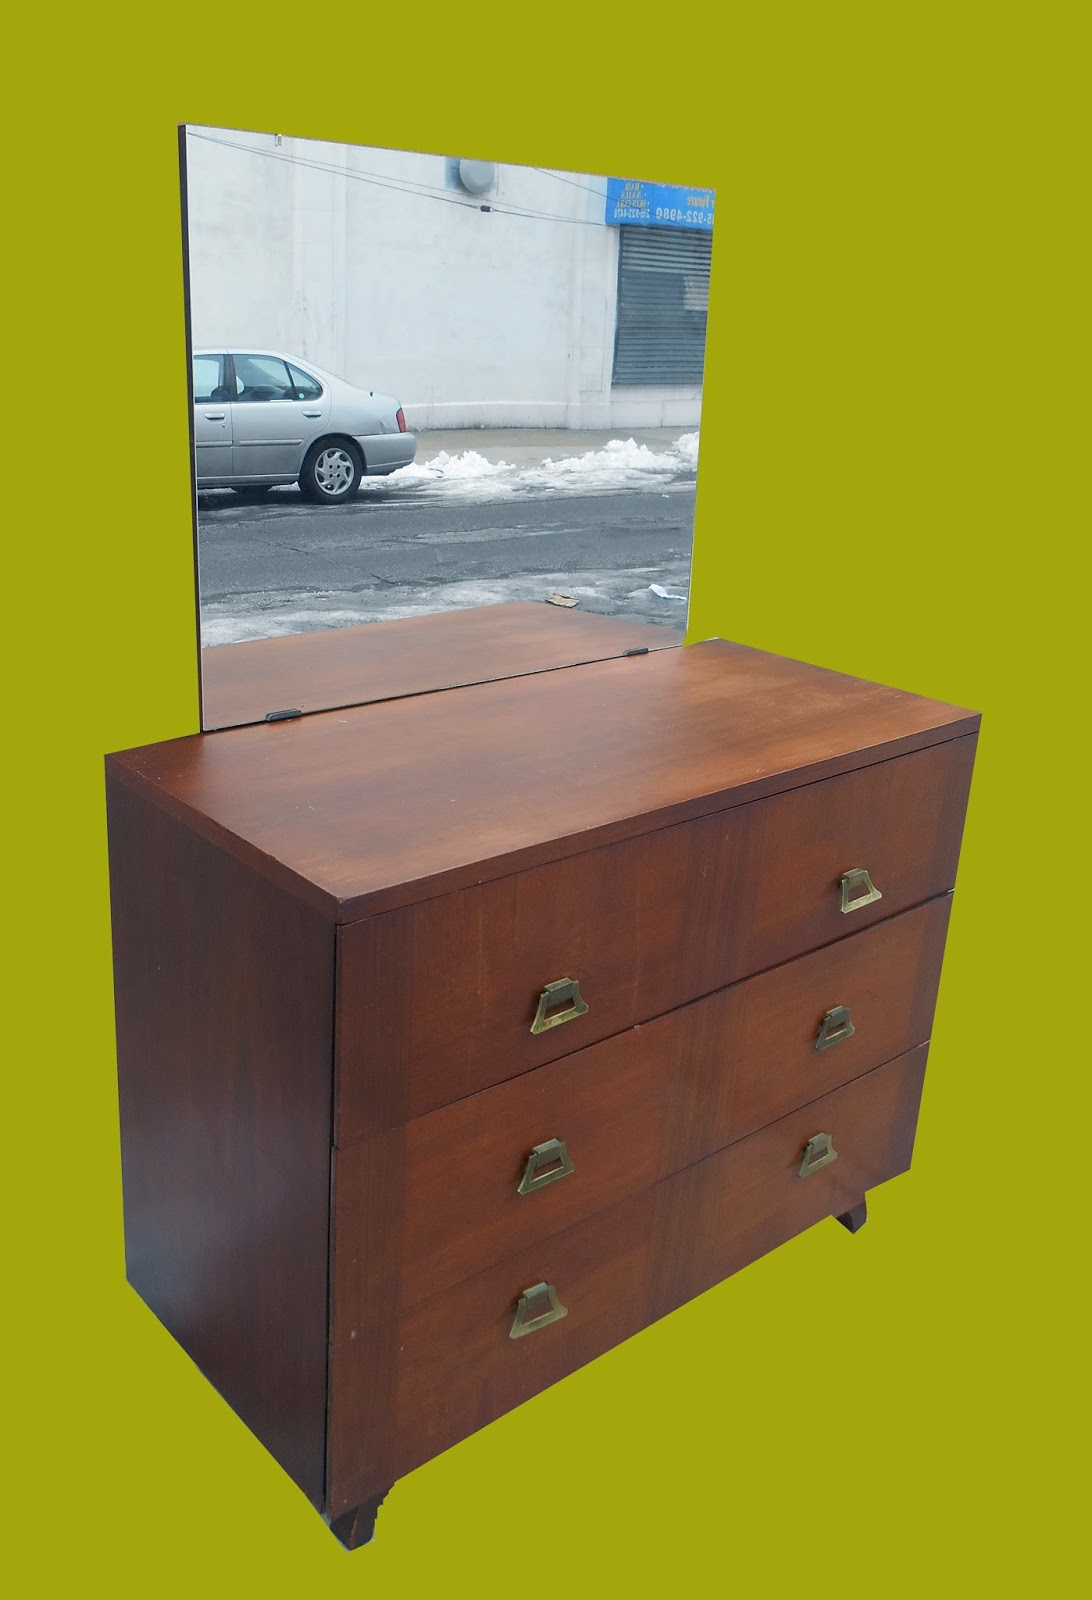 Bedroom furniture quick delivery for Furniture quick delivery